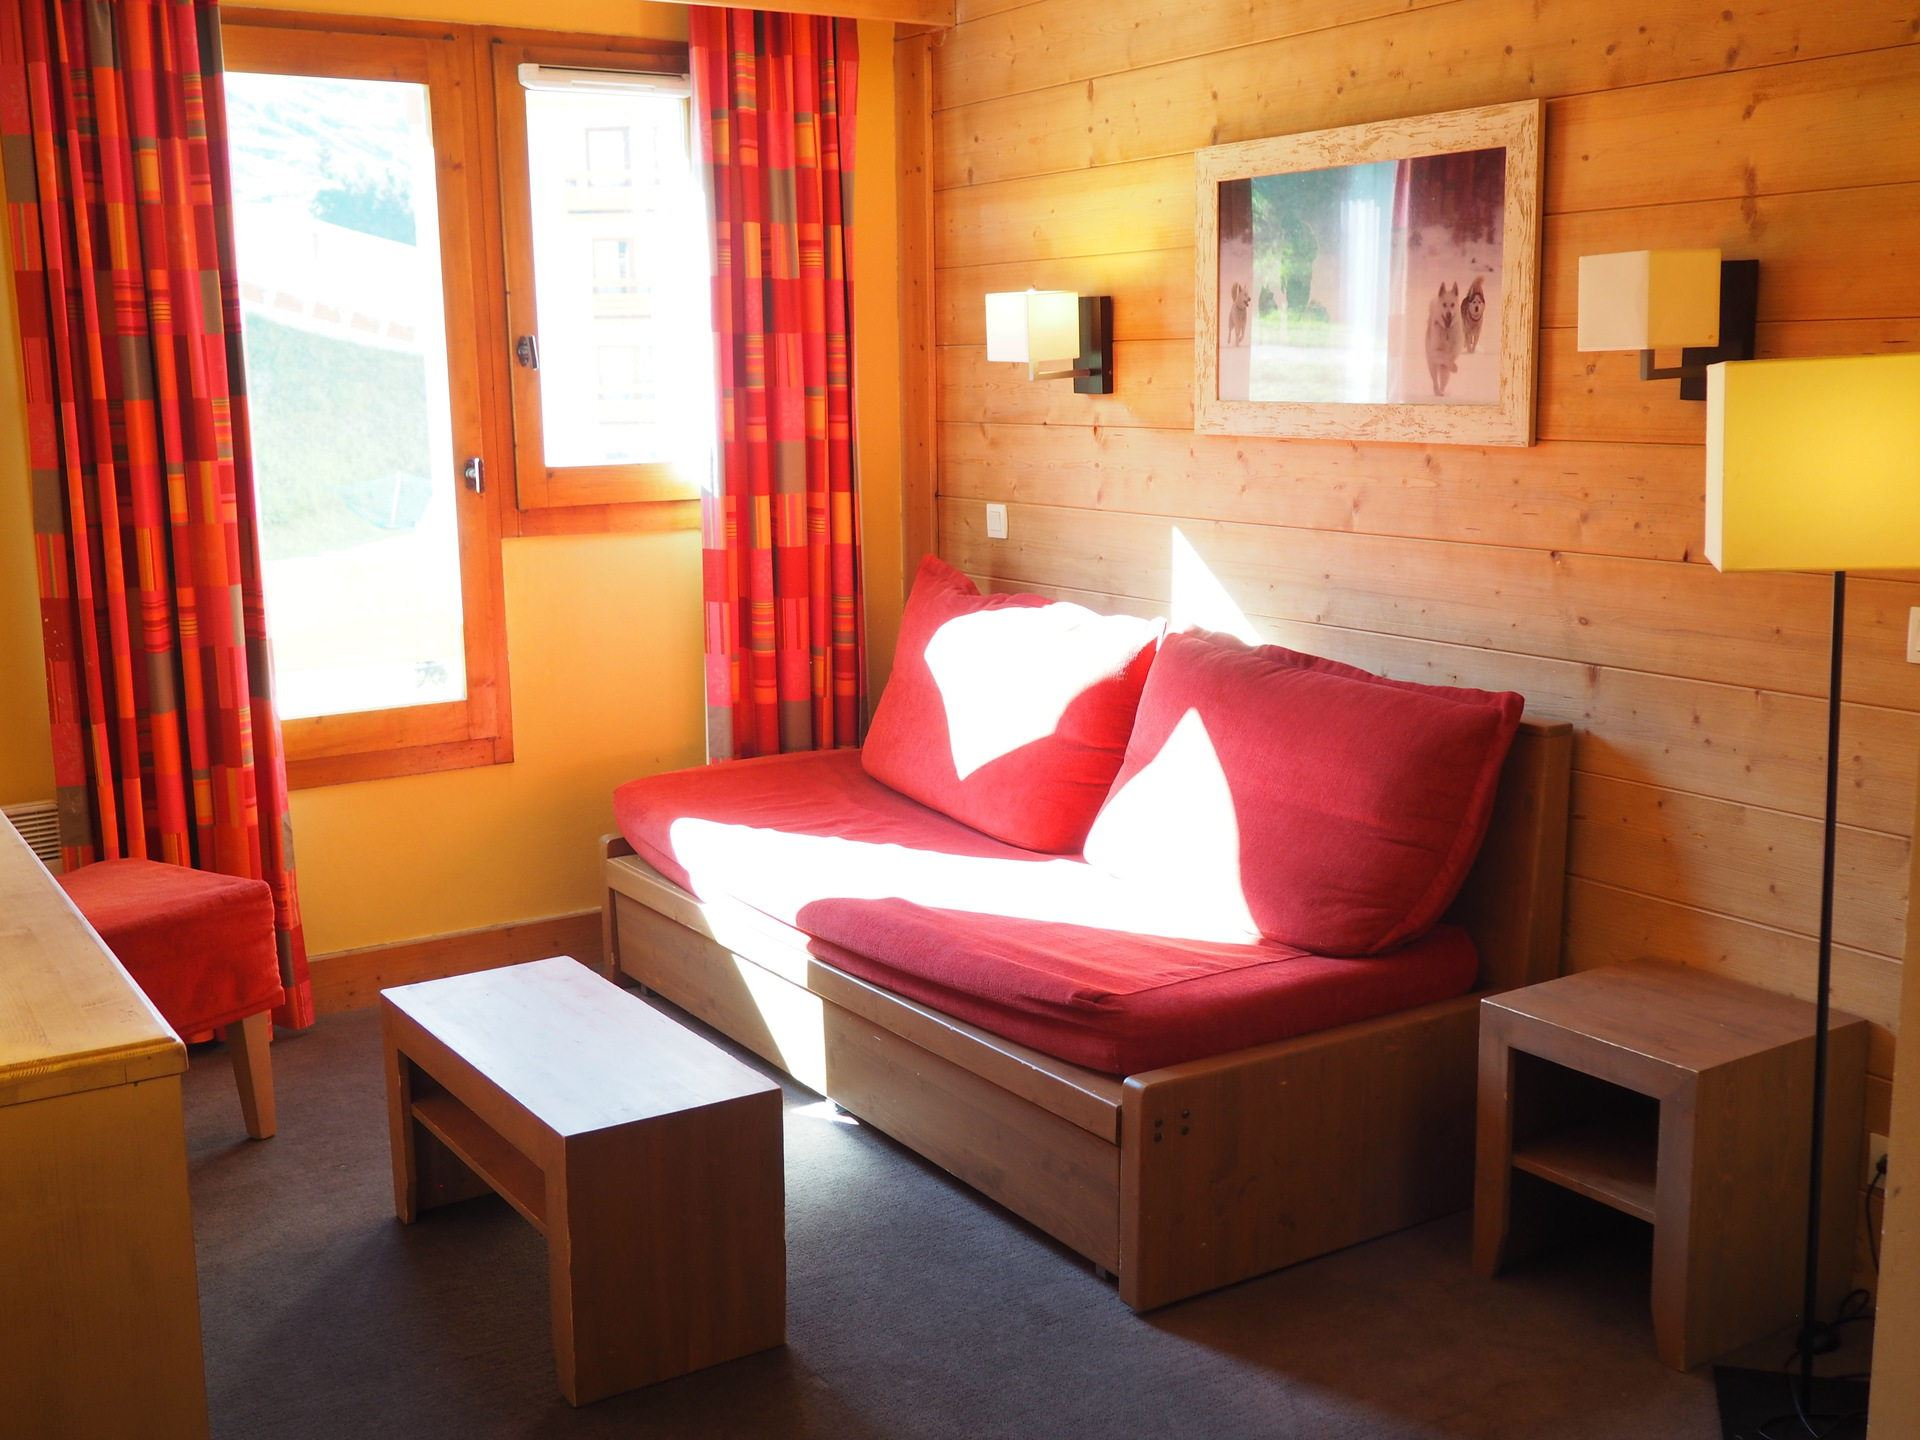 3 Room + cabin 8 Pers ski-in ski-out / ACONIT 224